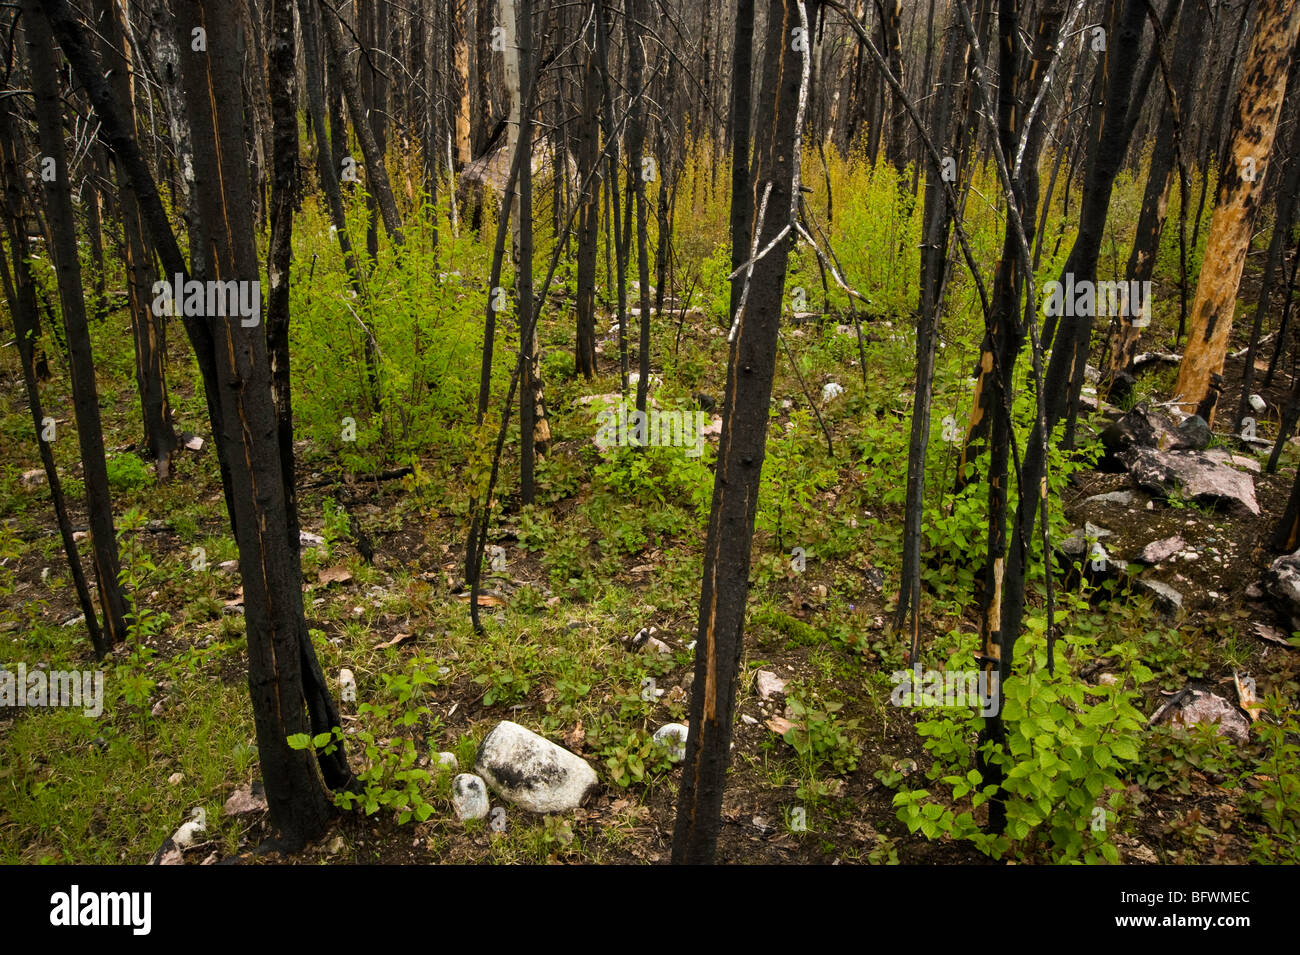 Forest fire regeneration. Aspens, shrubs and herbs growing among charred tree trunks, Greater Sudbury, Ontario, - Stock Image